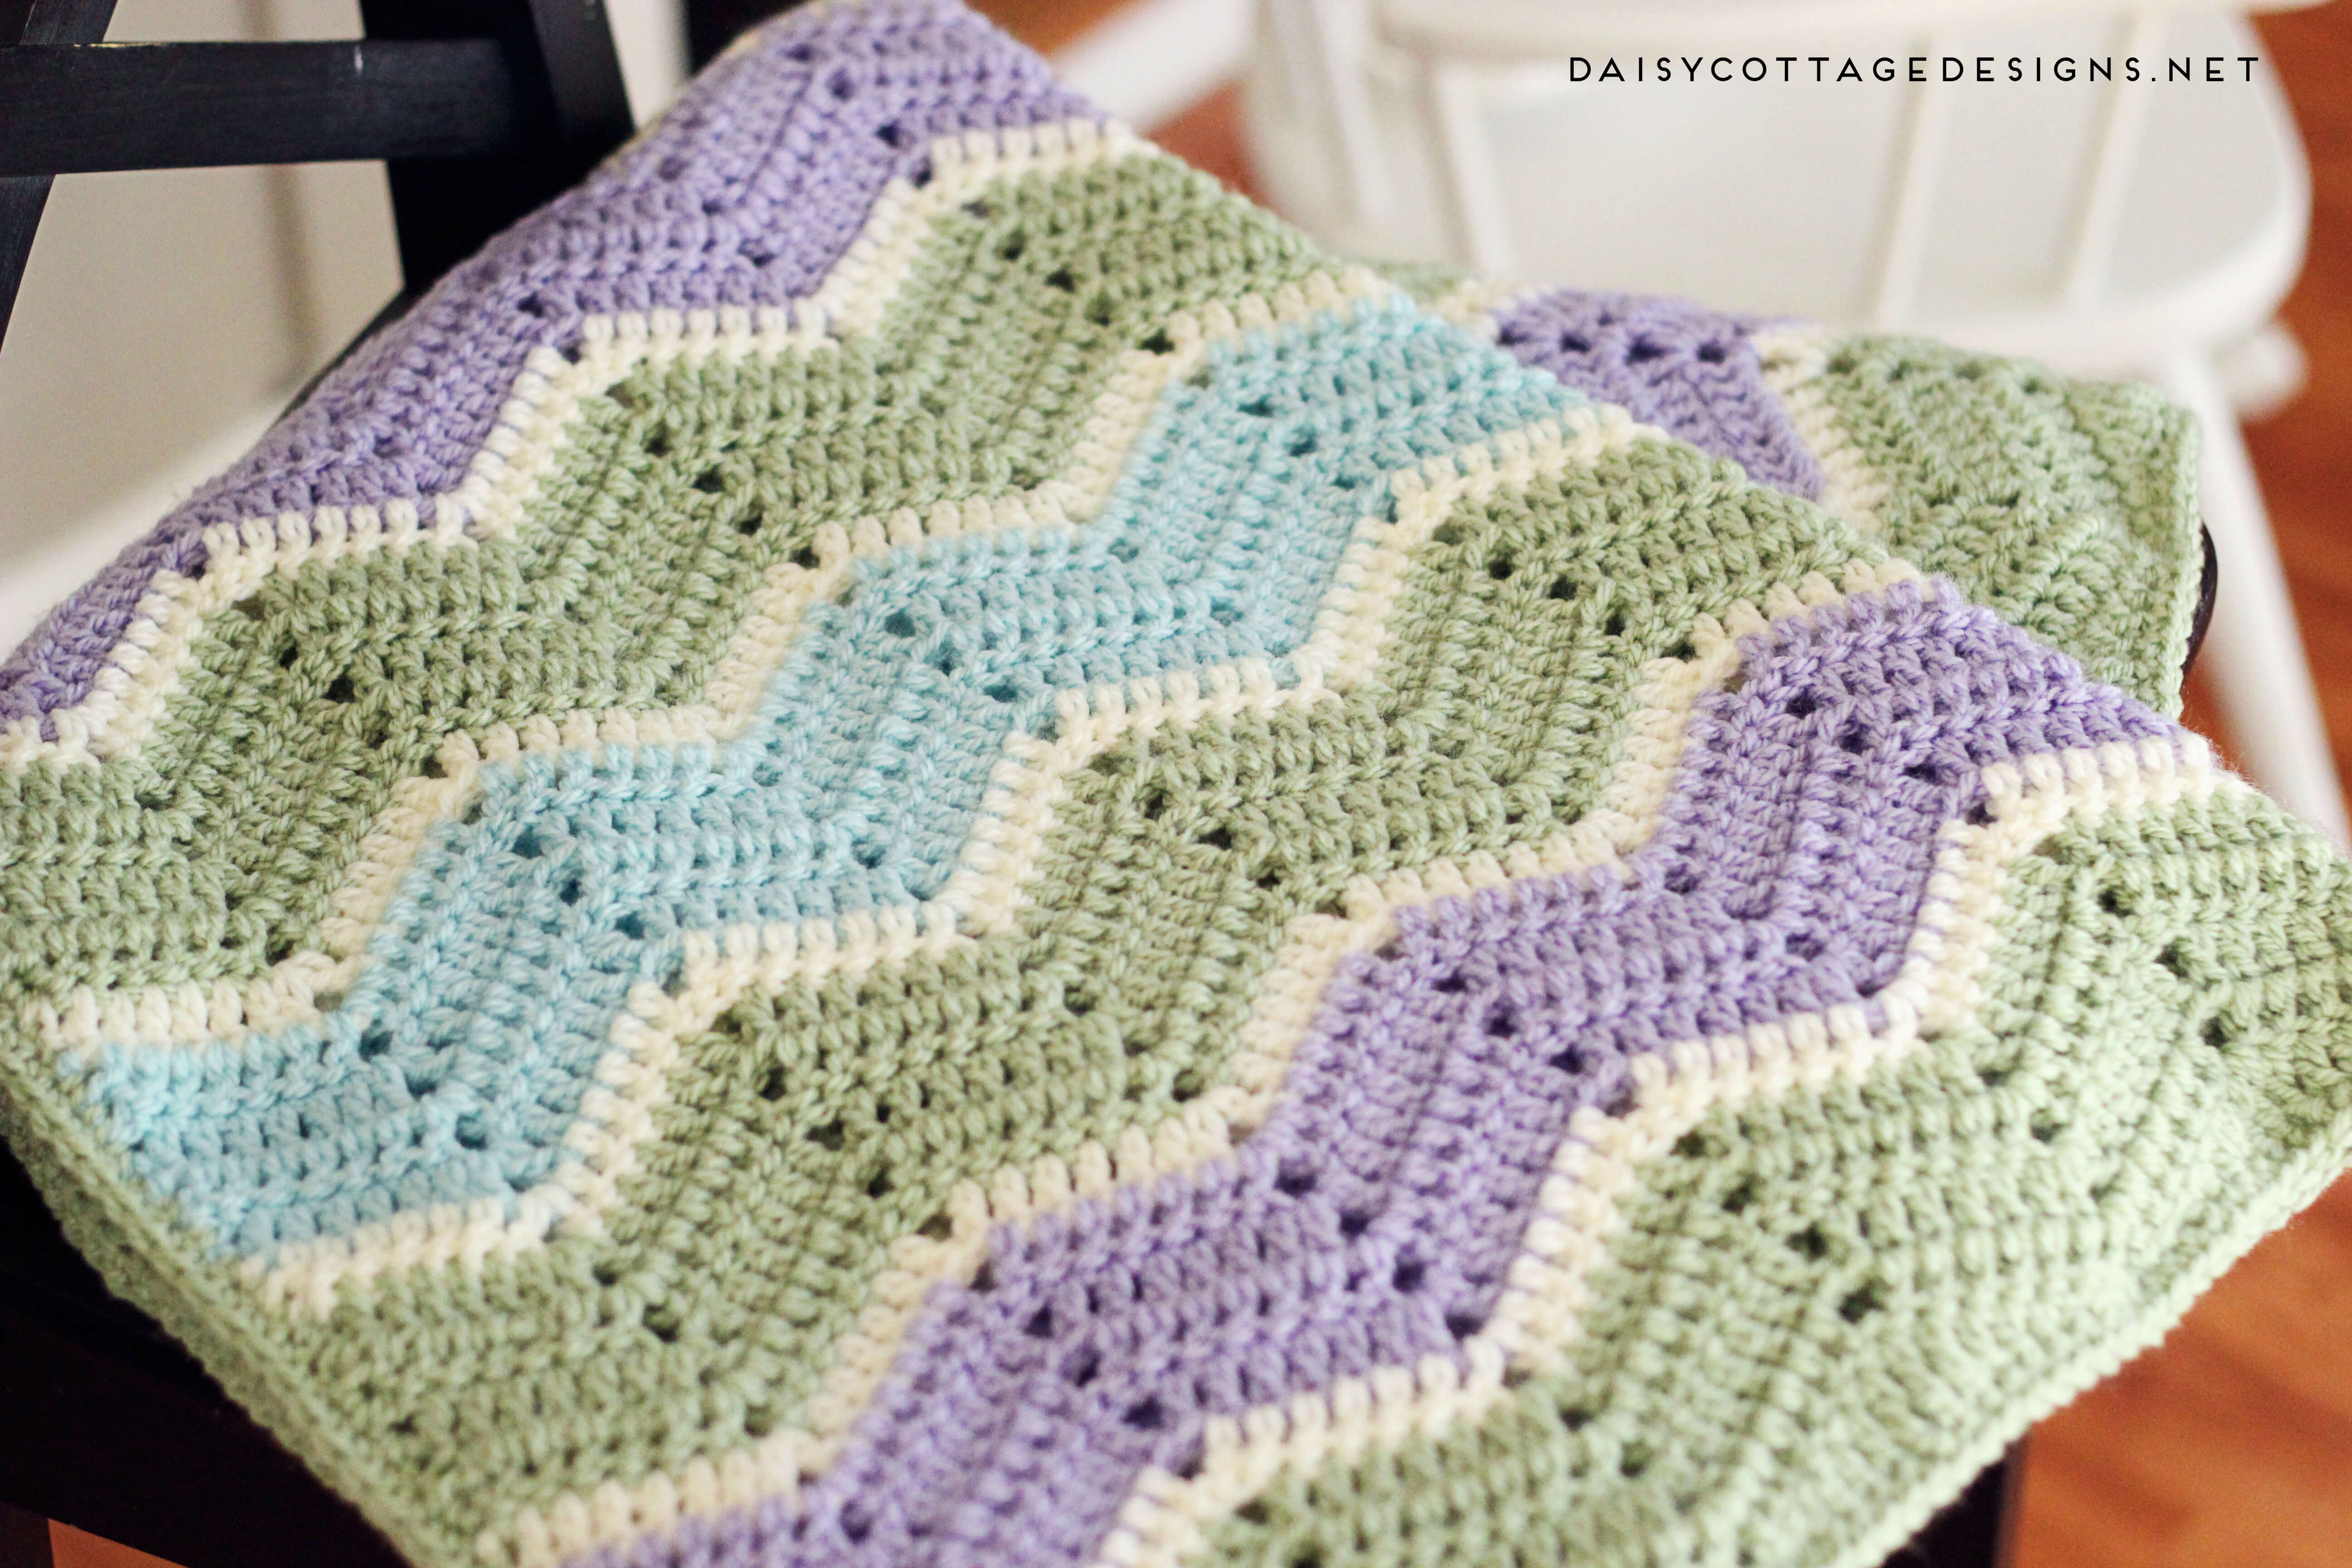 Awesome Ripple Blanket Crochet Pattern Daisy Cottage Designs Free Crochet Patterns for Newborns Of Unique 40 Photos Free Crochet Patterns for Newborns